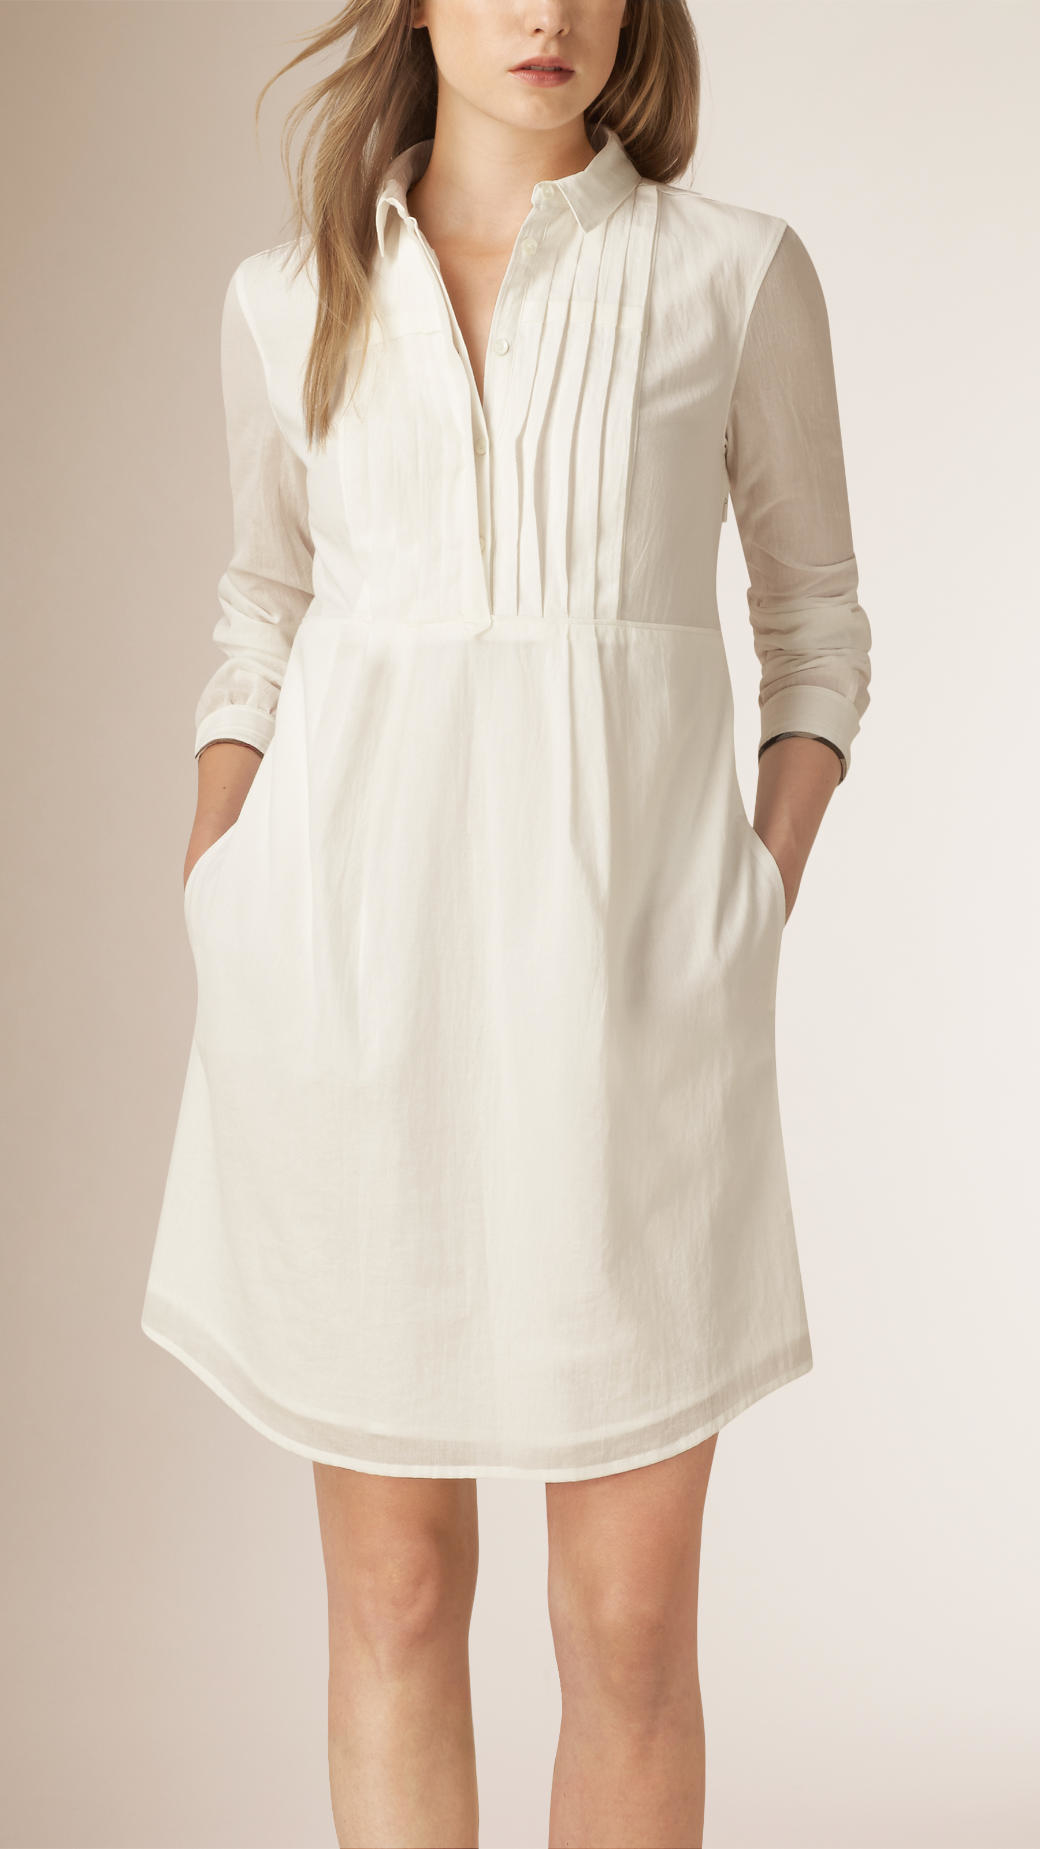 8a46cfb8bc0a Lyst - Burberry Pleat Detail Cotton Shirt Dress in White